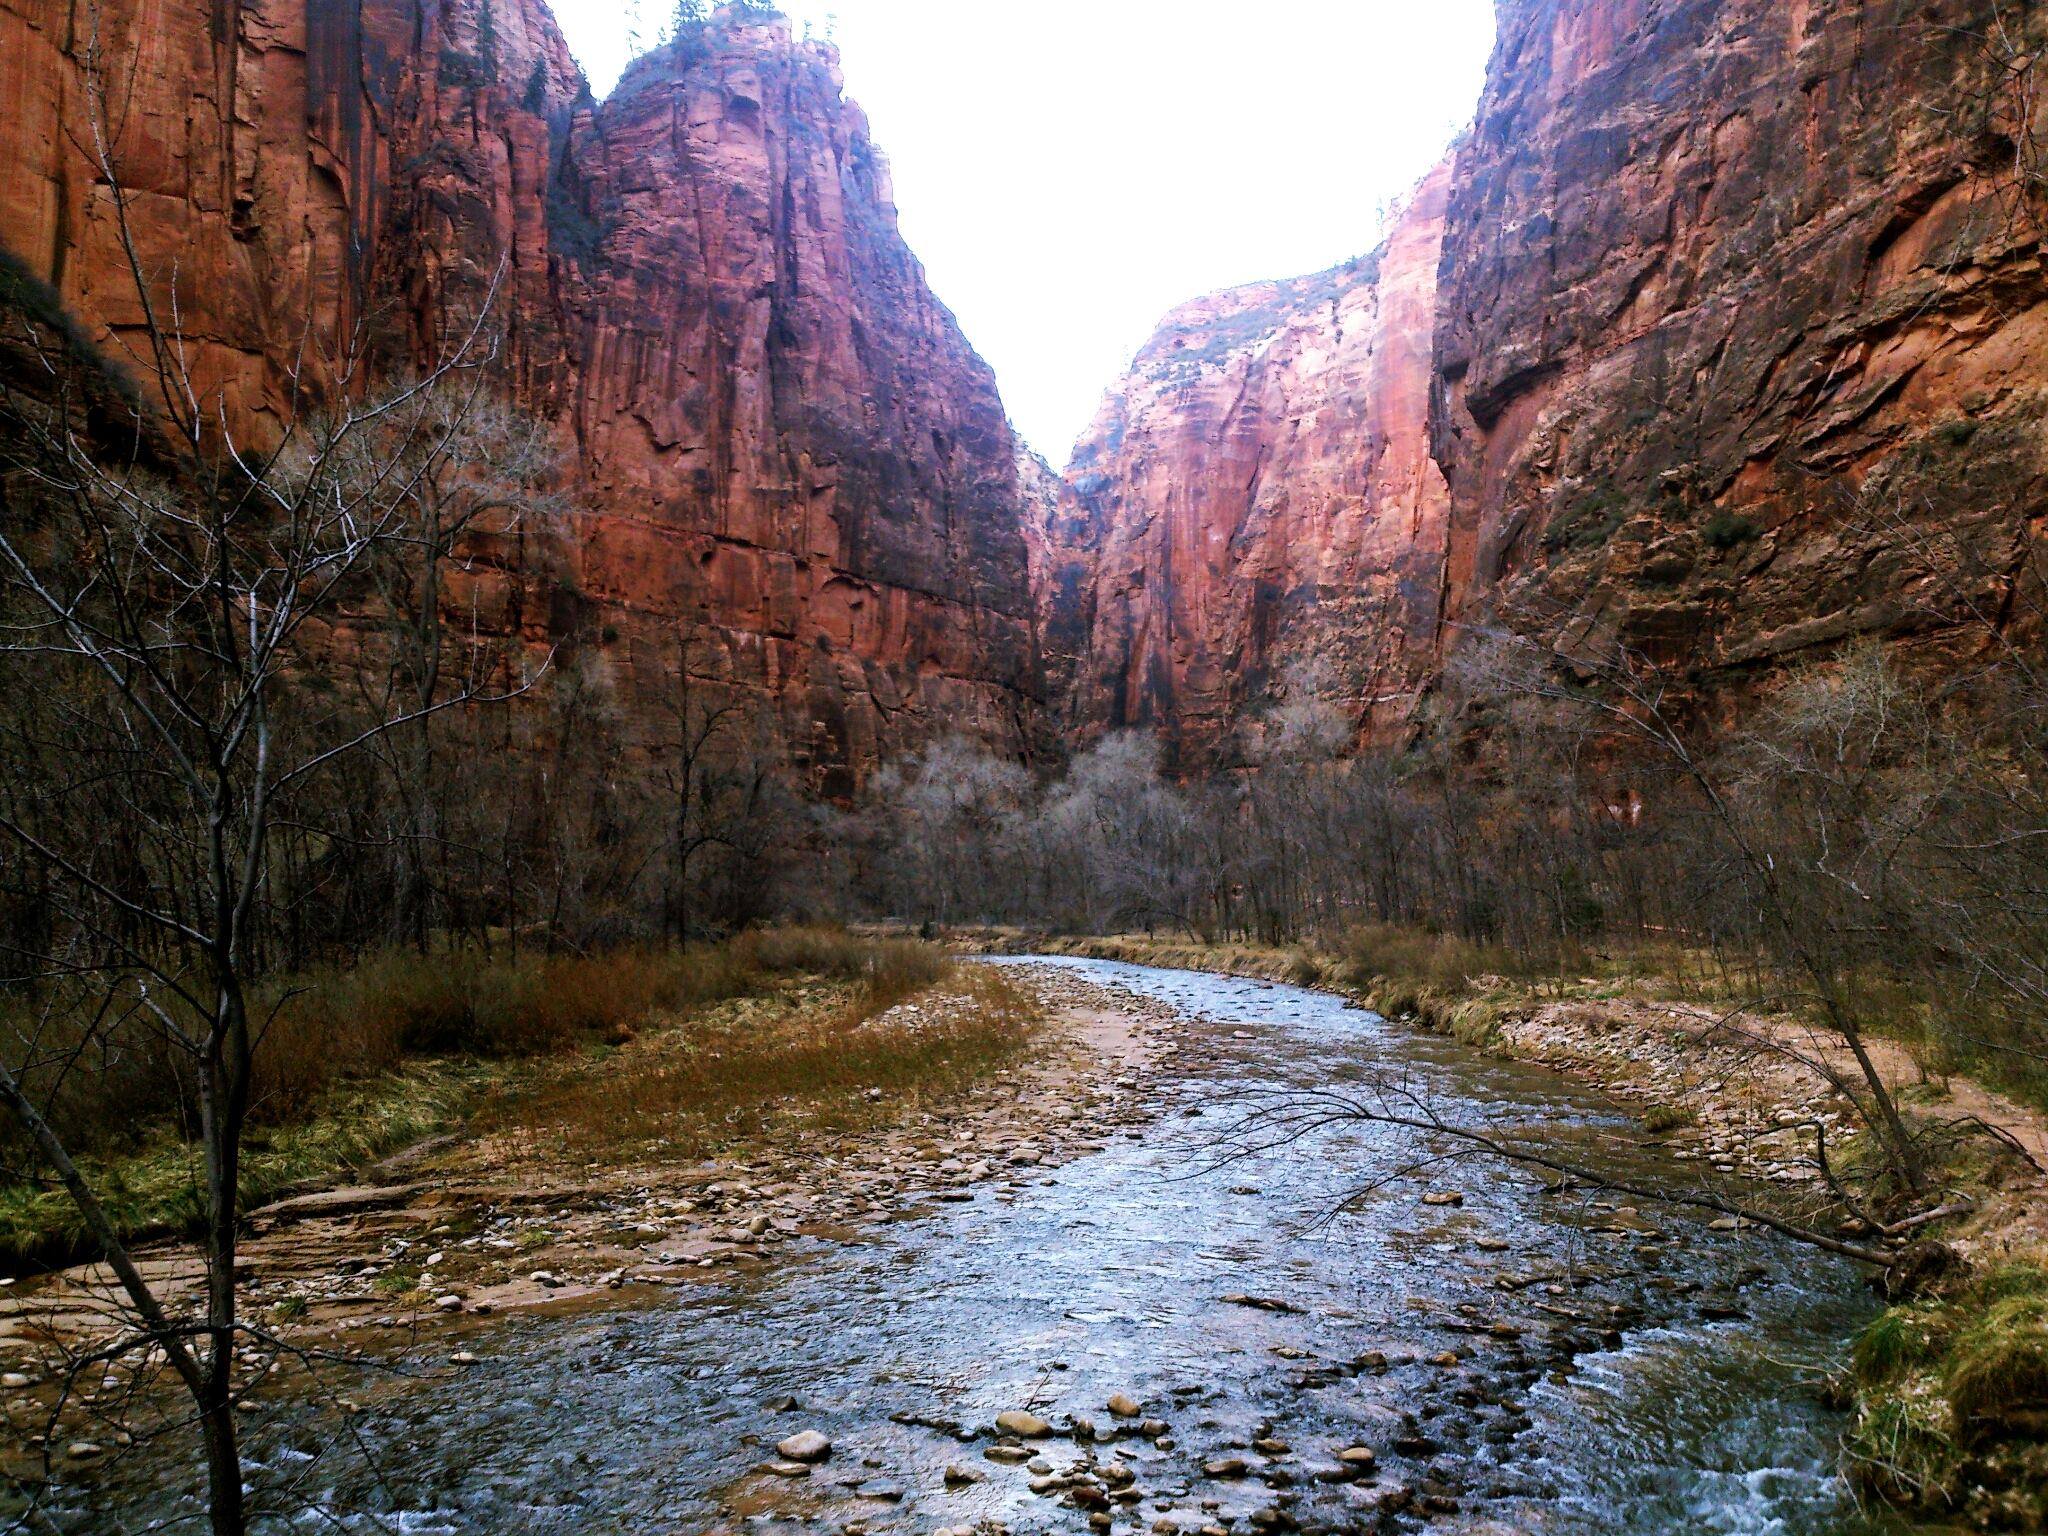 Virgin River and mountains at Zion